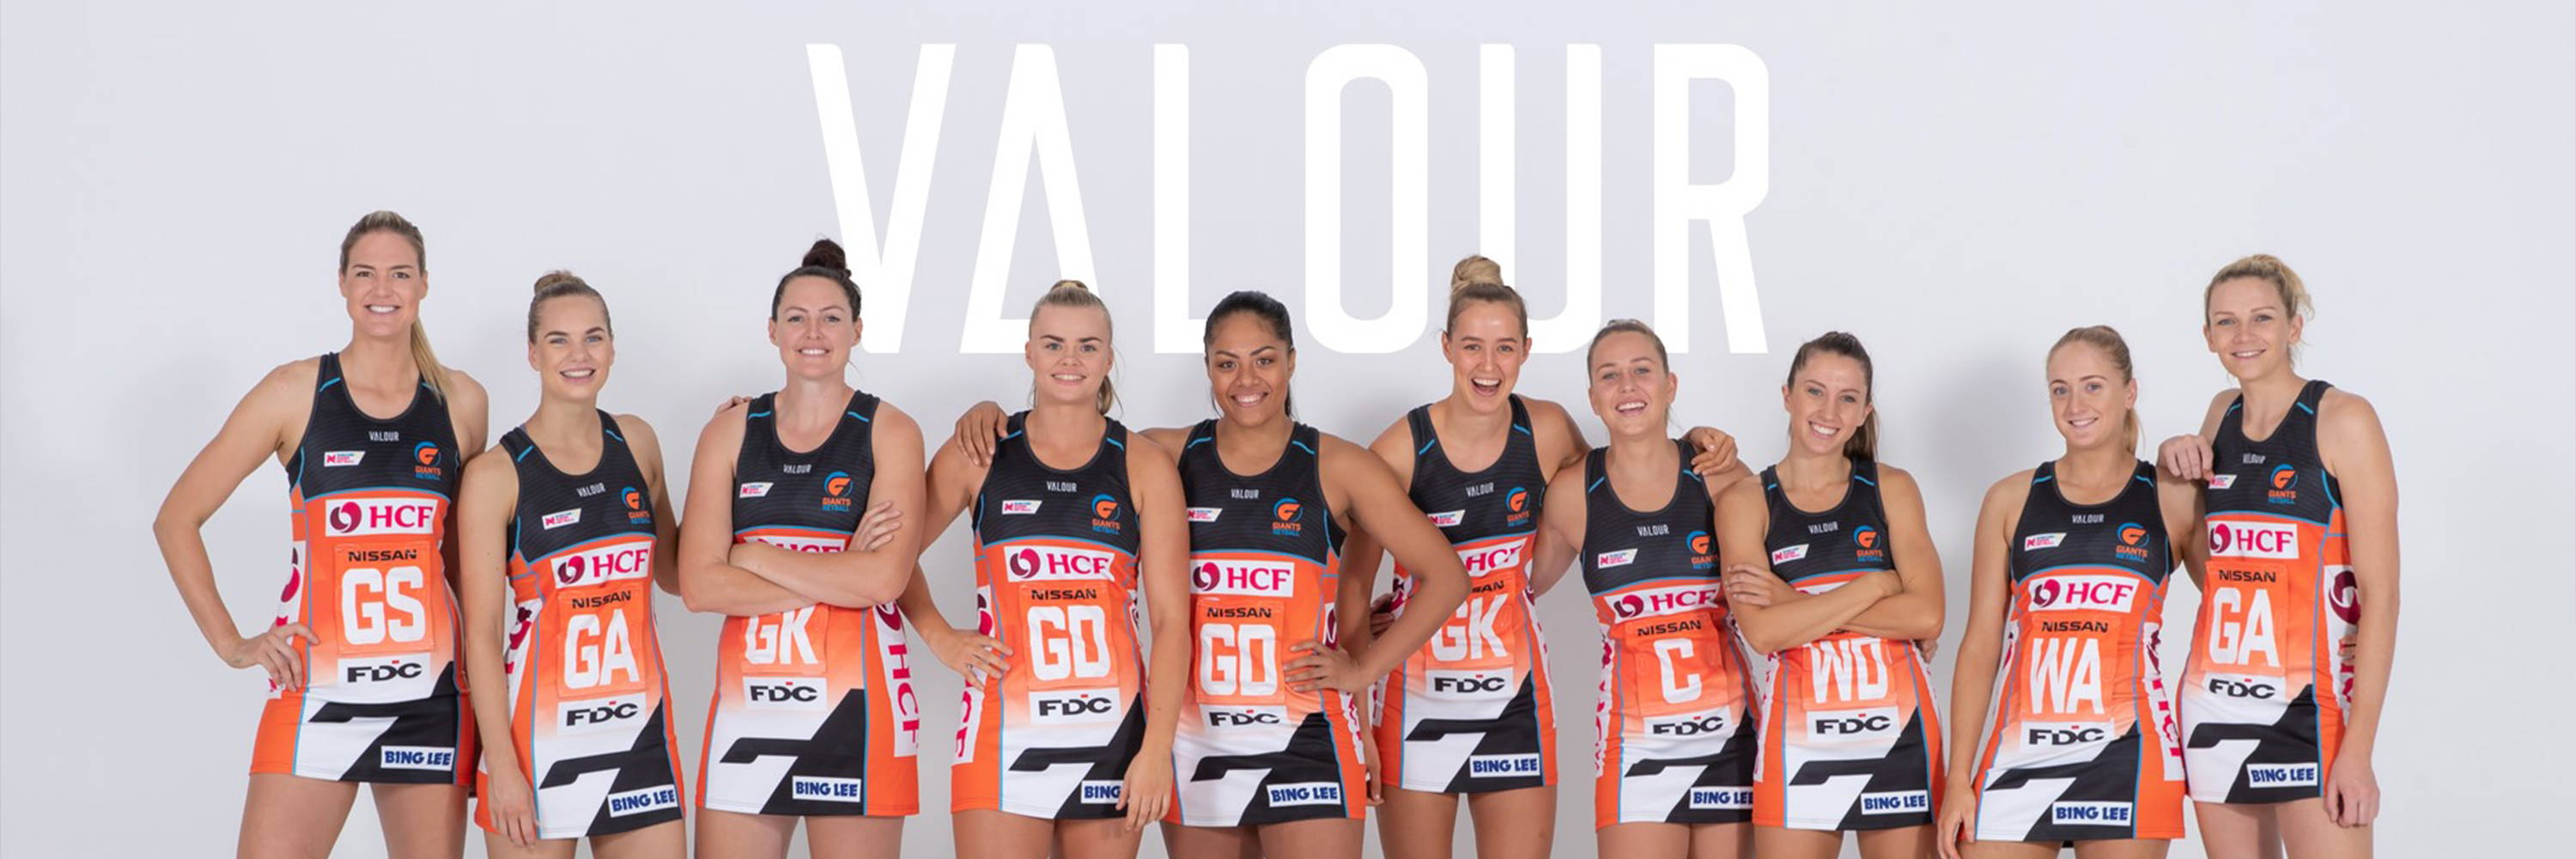 Valour Sport is the offical sportswear and merchandise partner to GIANTS Netball